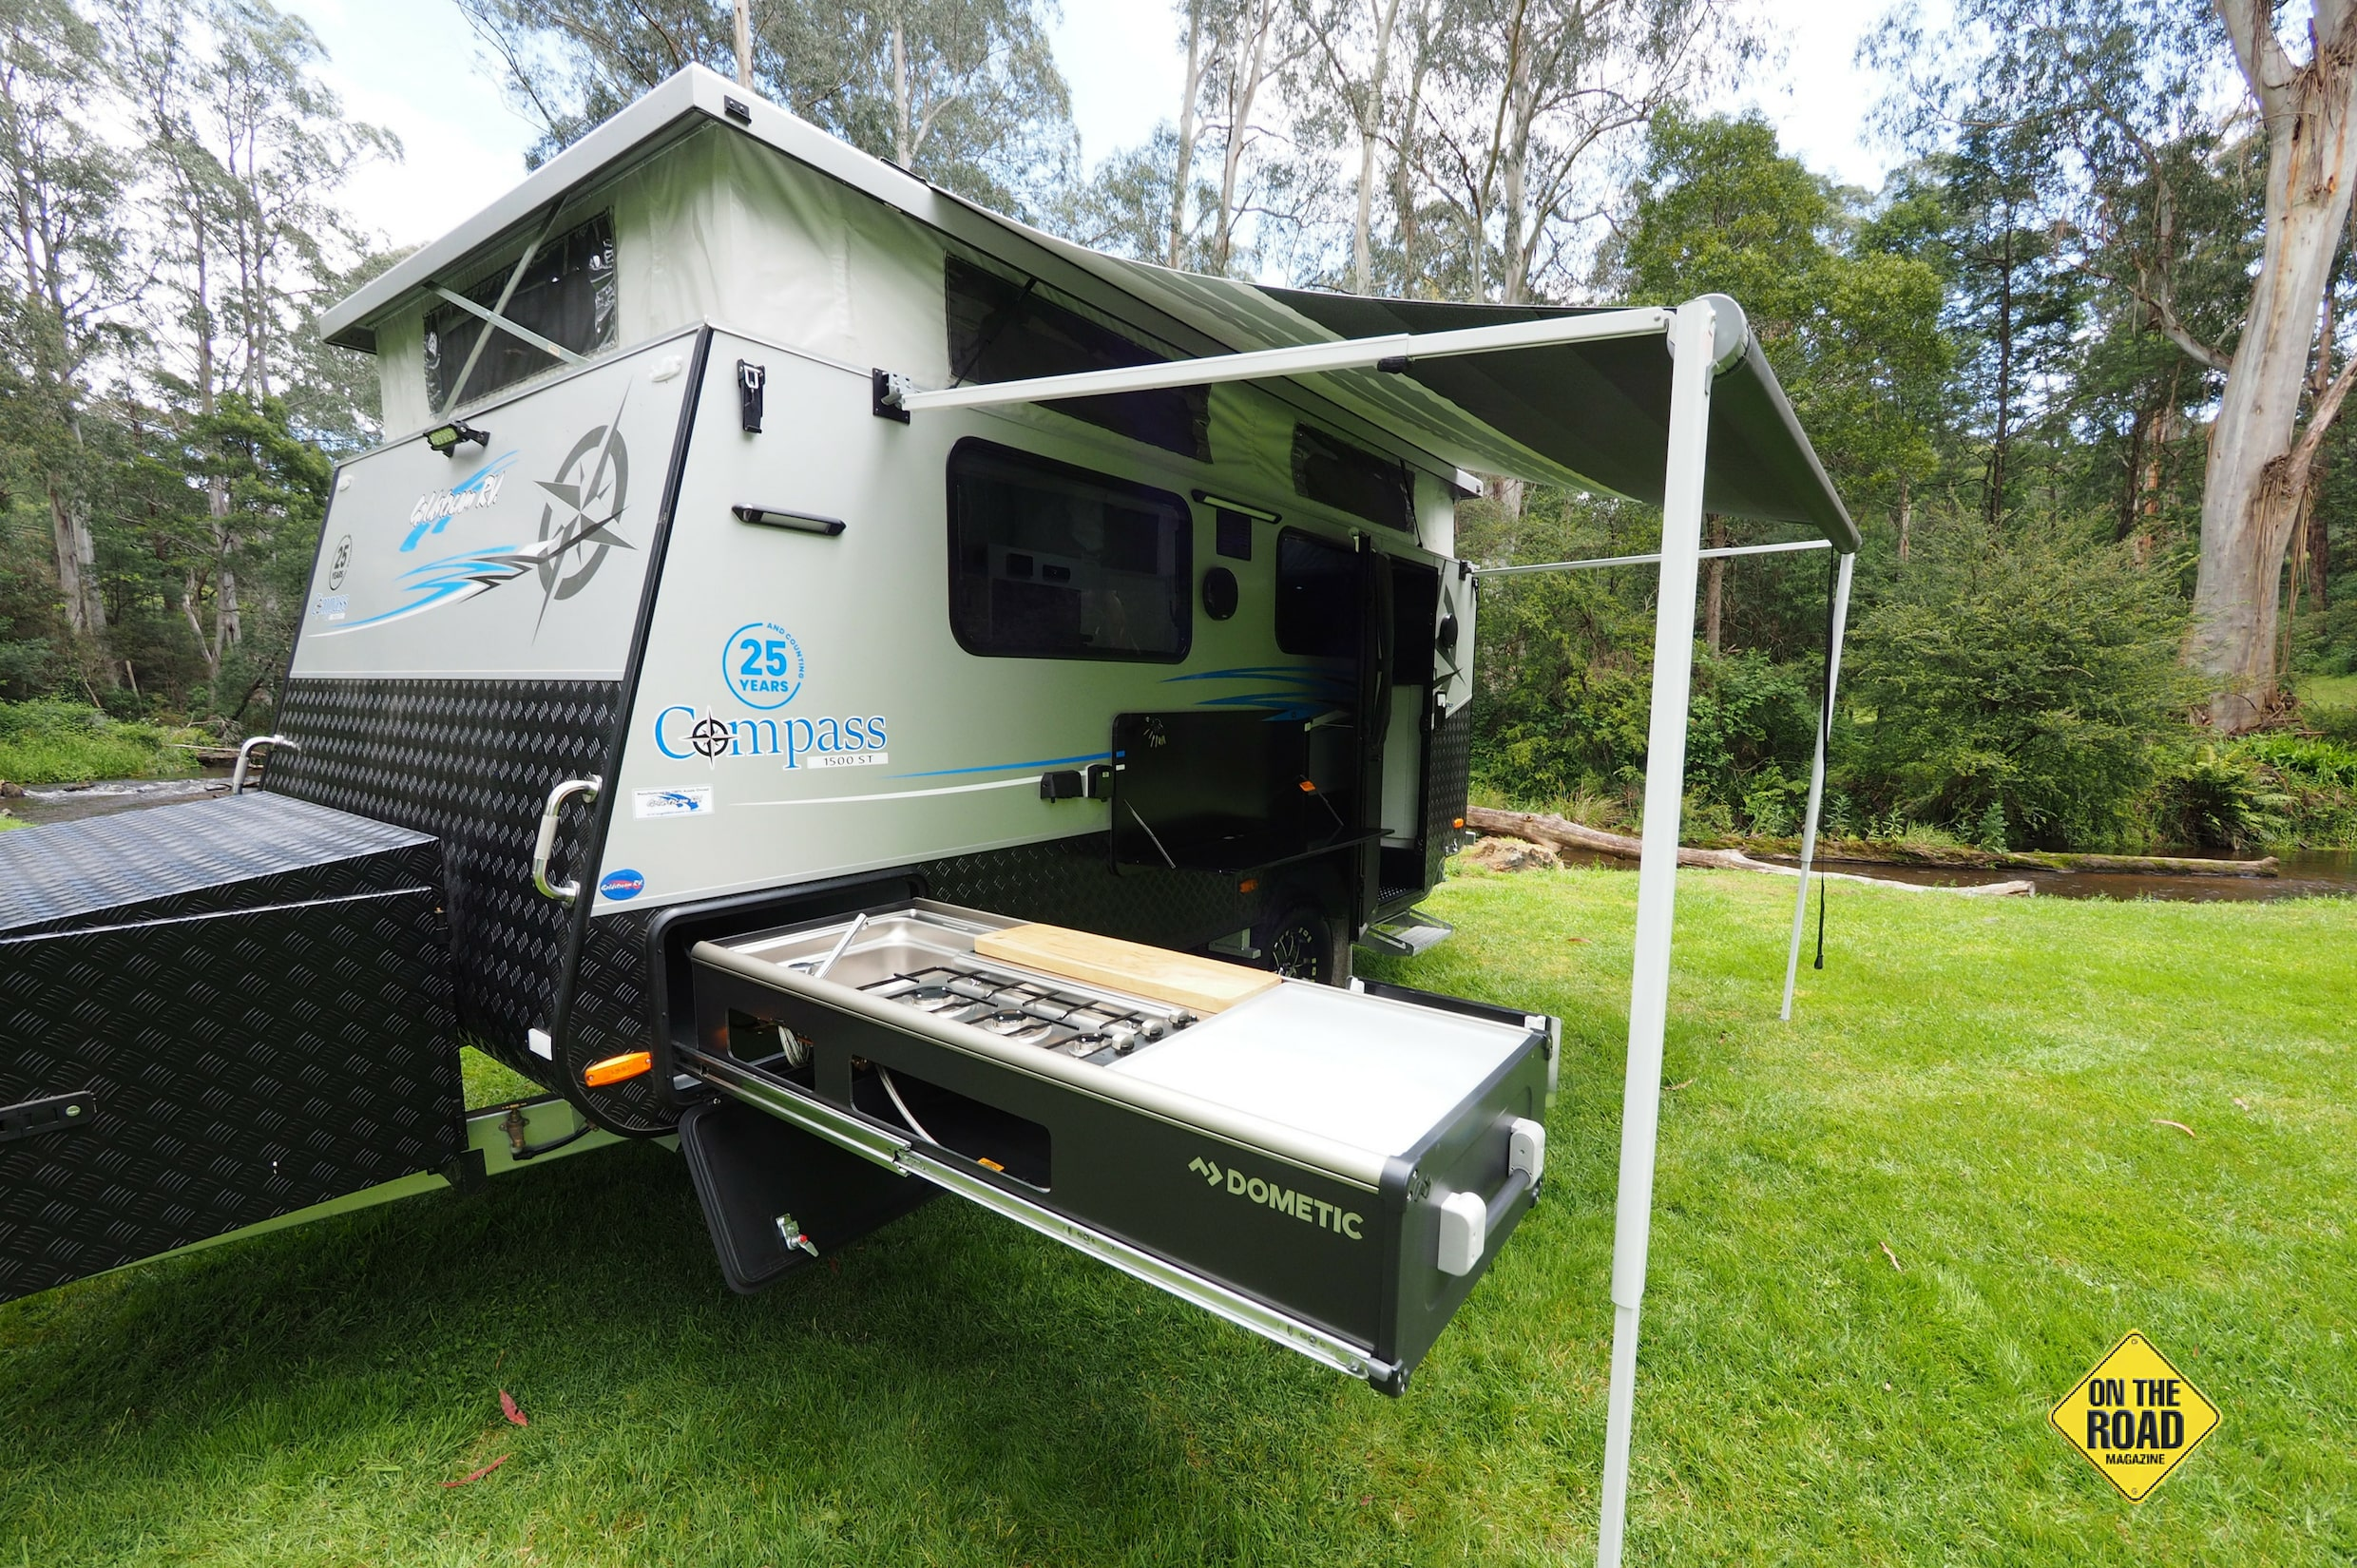 The Compass 1500 is the latest poptop caravan from Goldstream and we are very impressed with the little off-roader